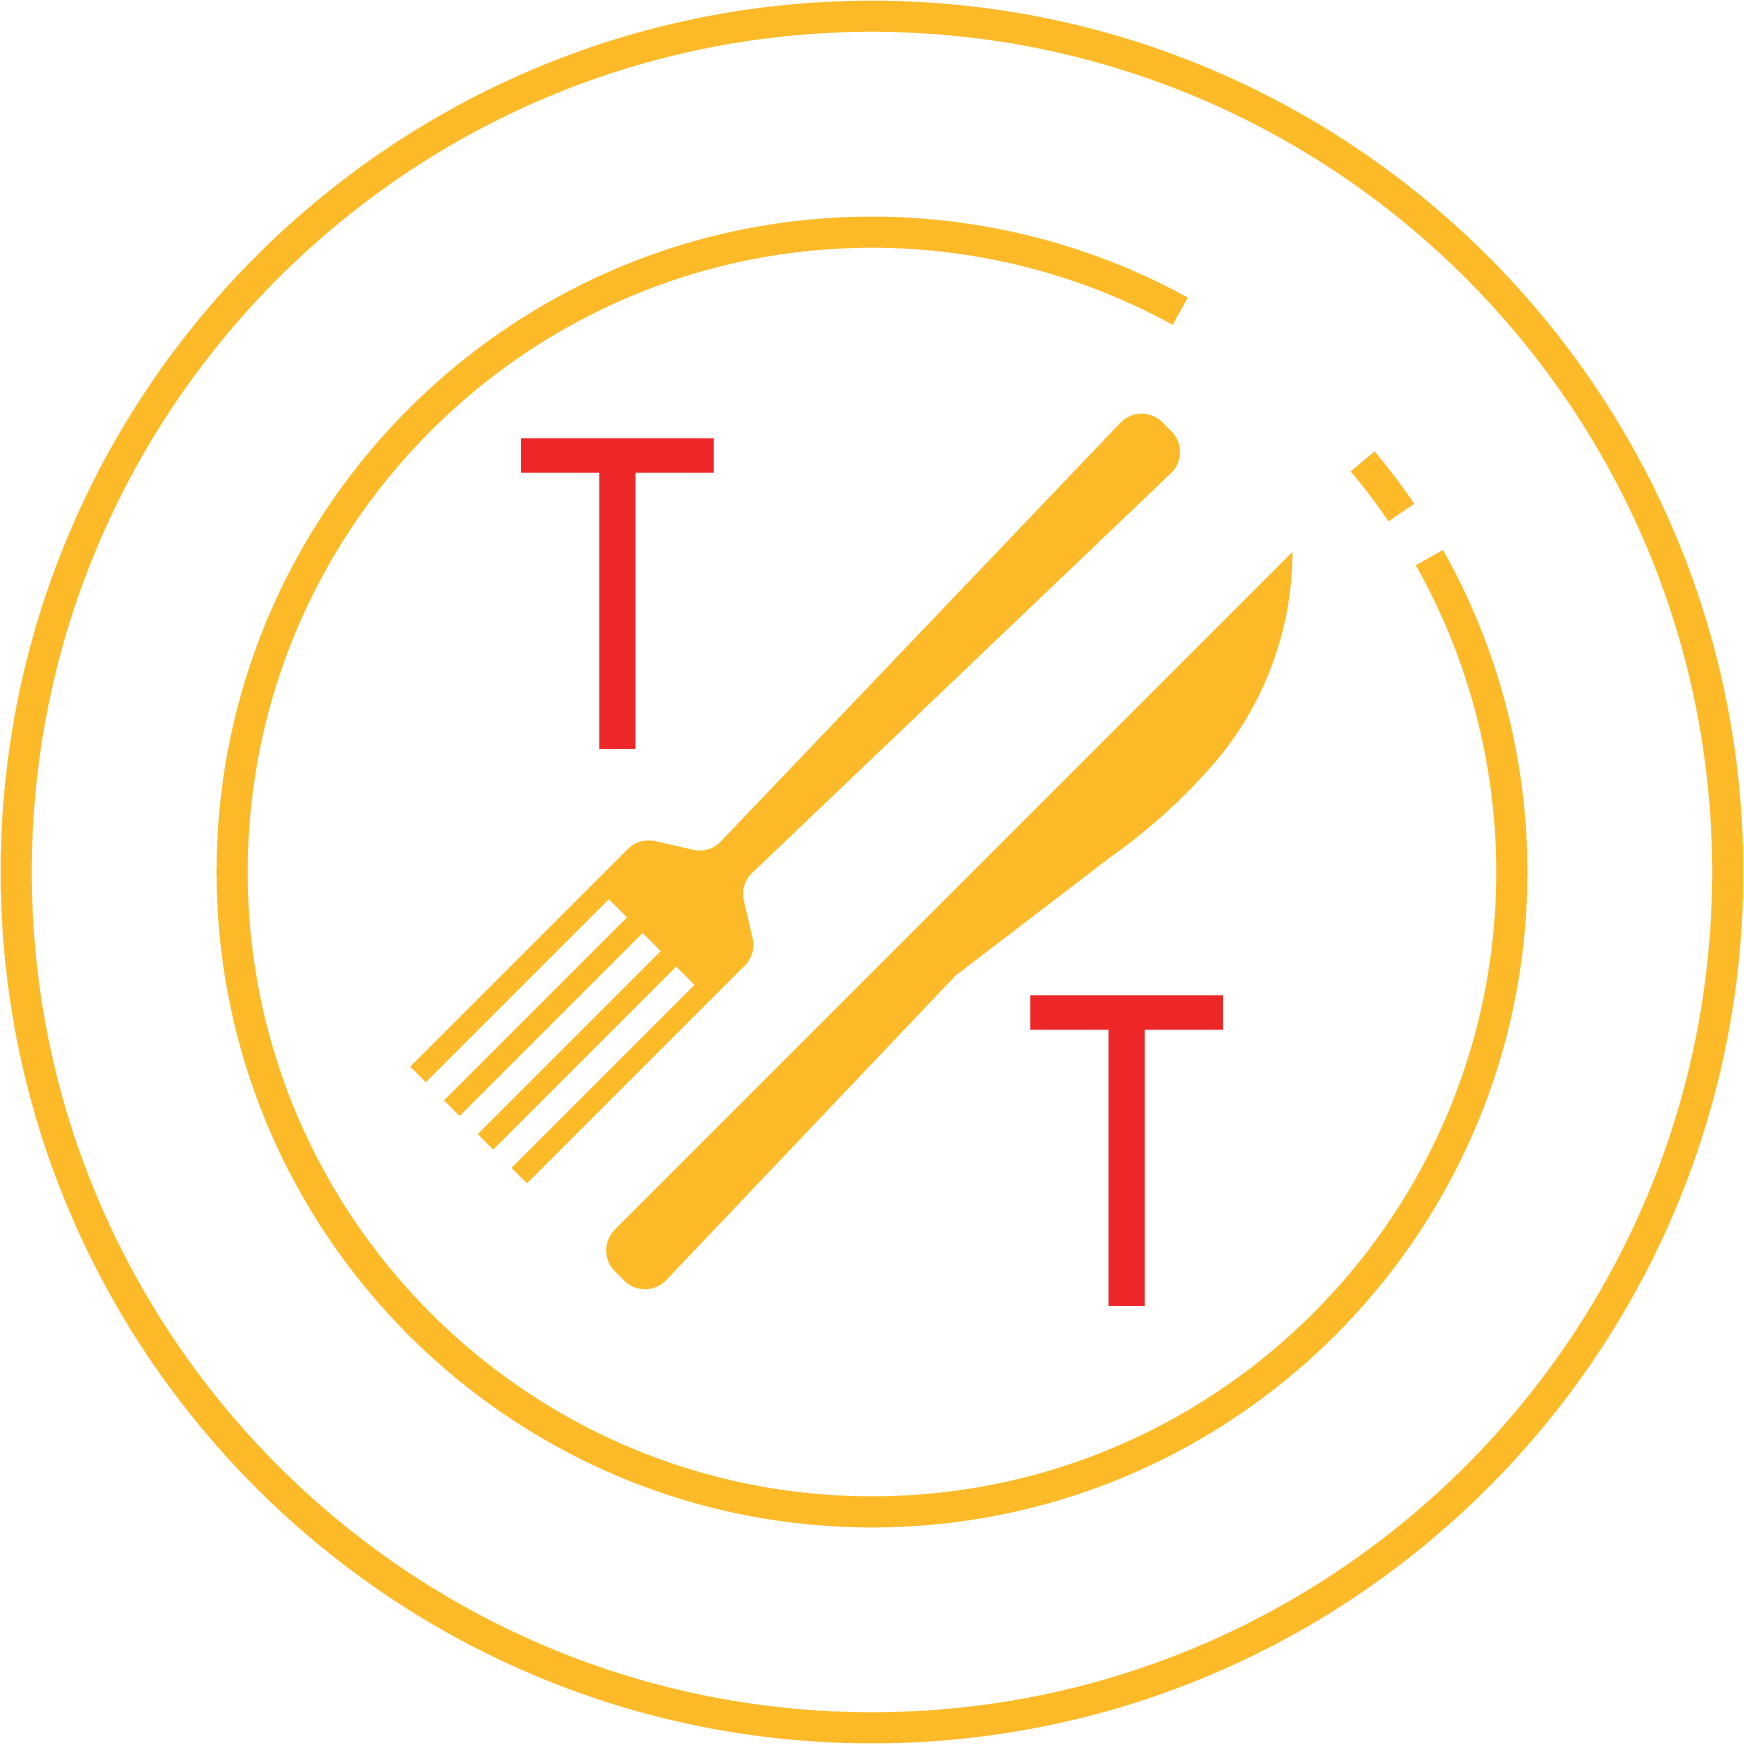 TT-Badge-1-Full-Color.png